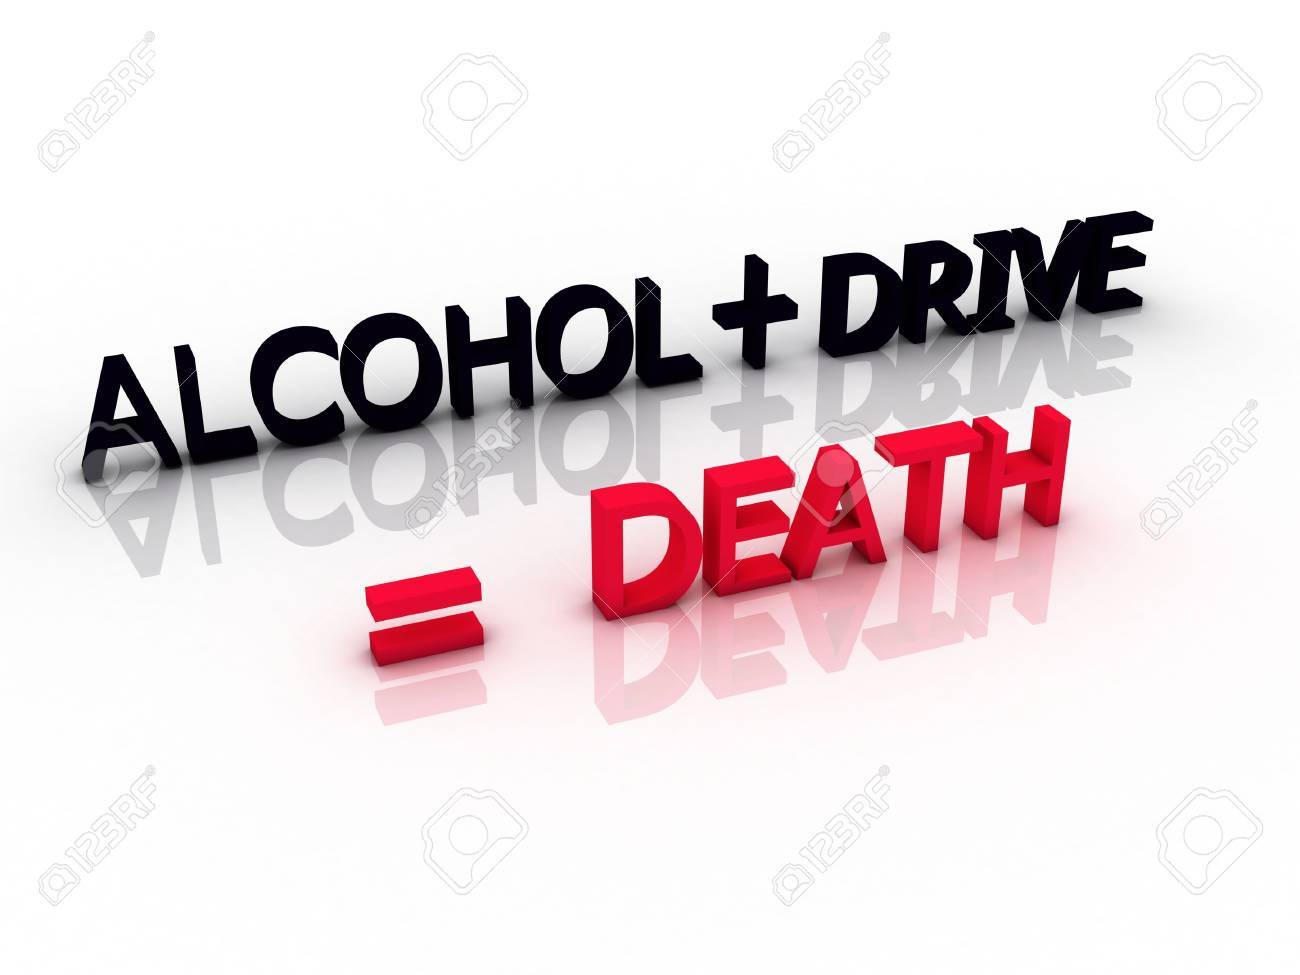 words meaning death when you drive and drink alcohol Stock Photo - 19242682